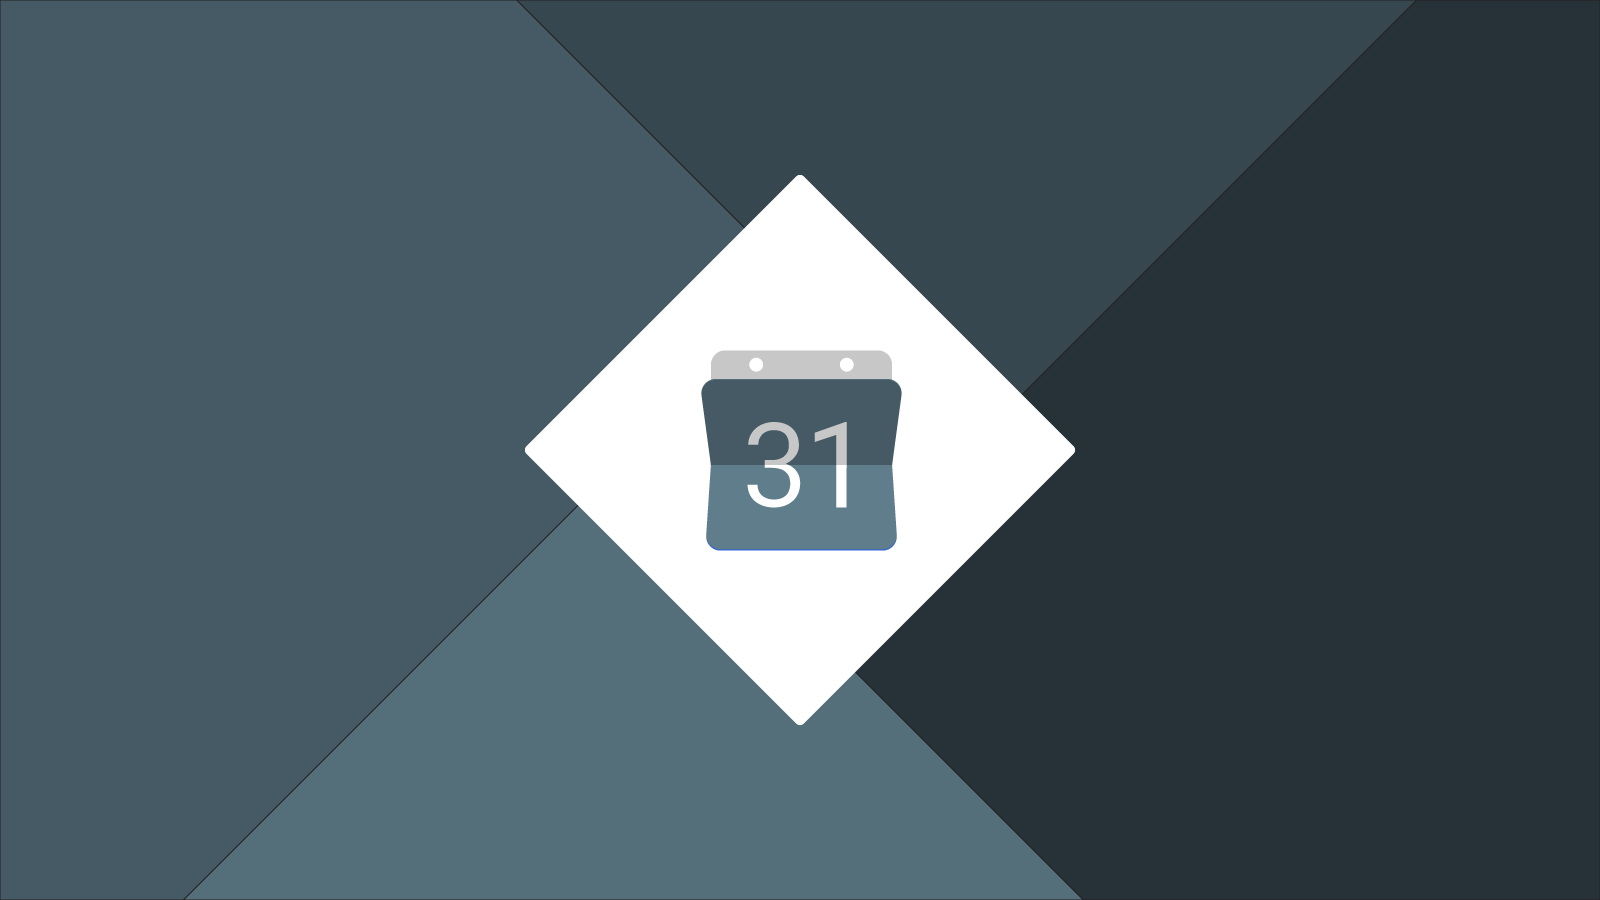 Learn more about the Google Calendar Adobe Muse widget